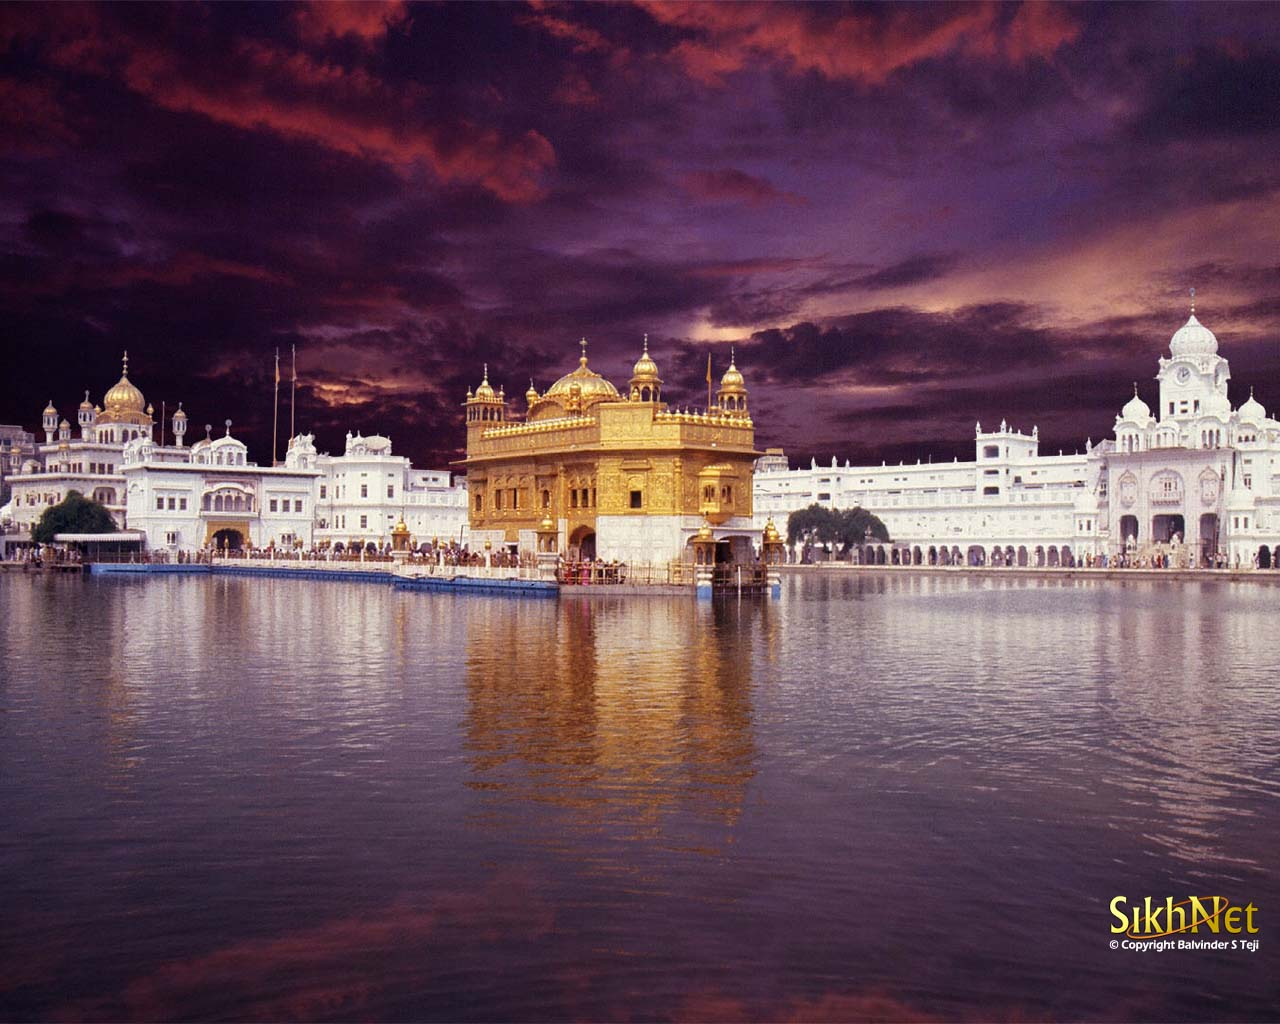 Sikh Wallpapers Hd For Iphone 5 The Sikhism Computer Wallpaper Page 6